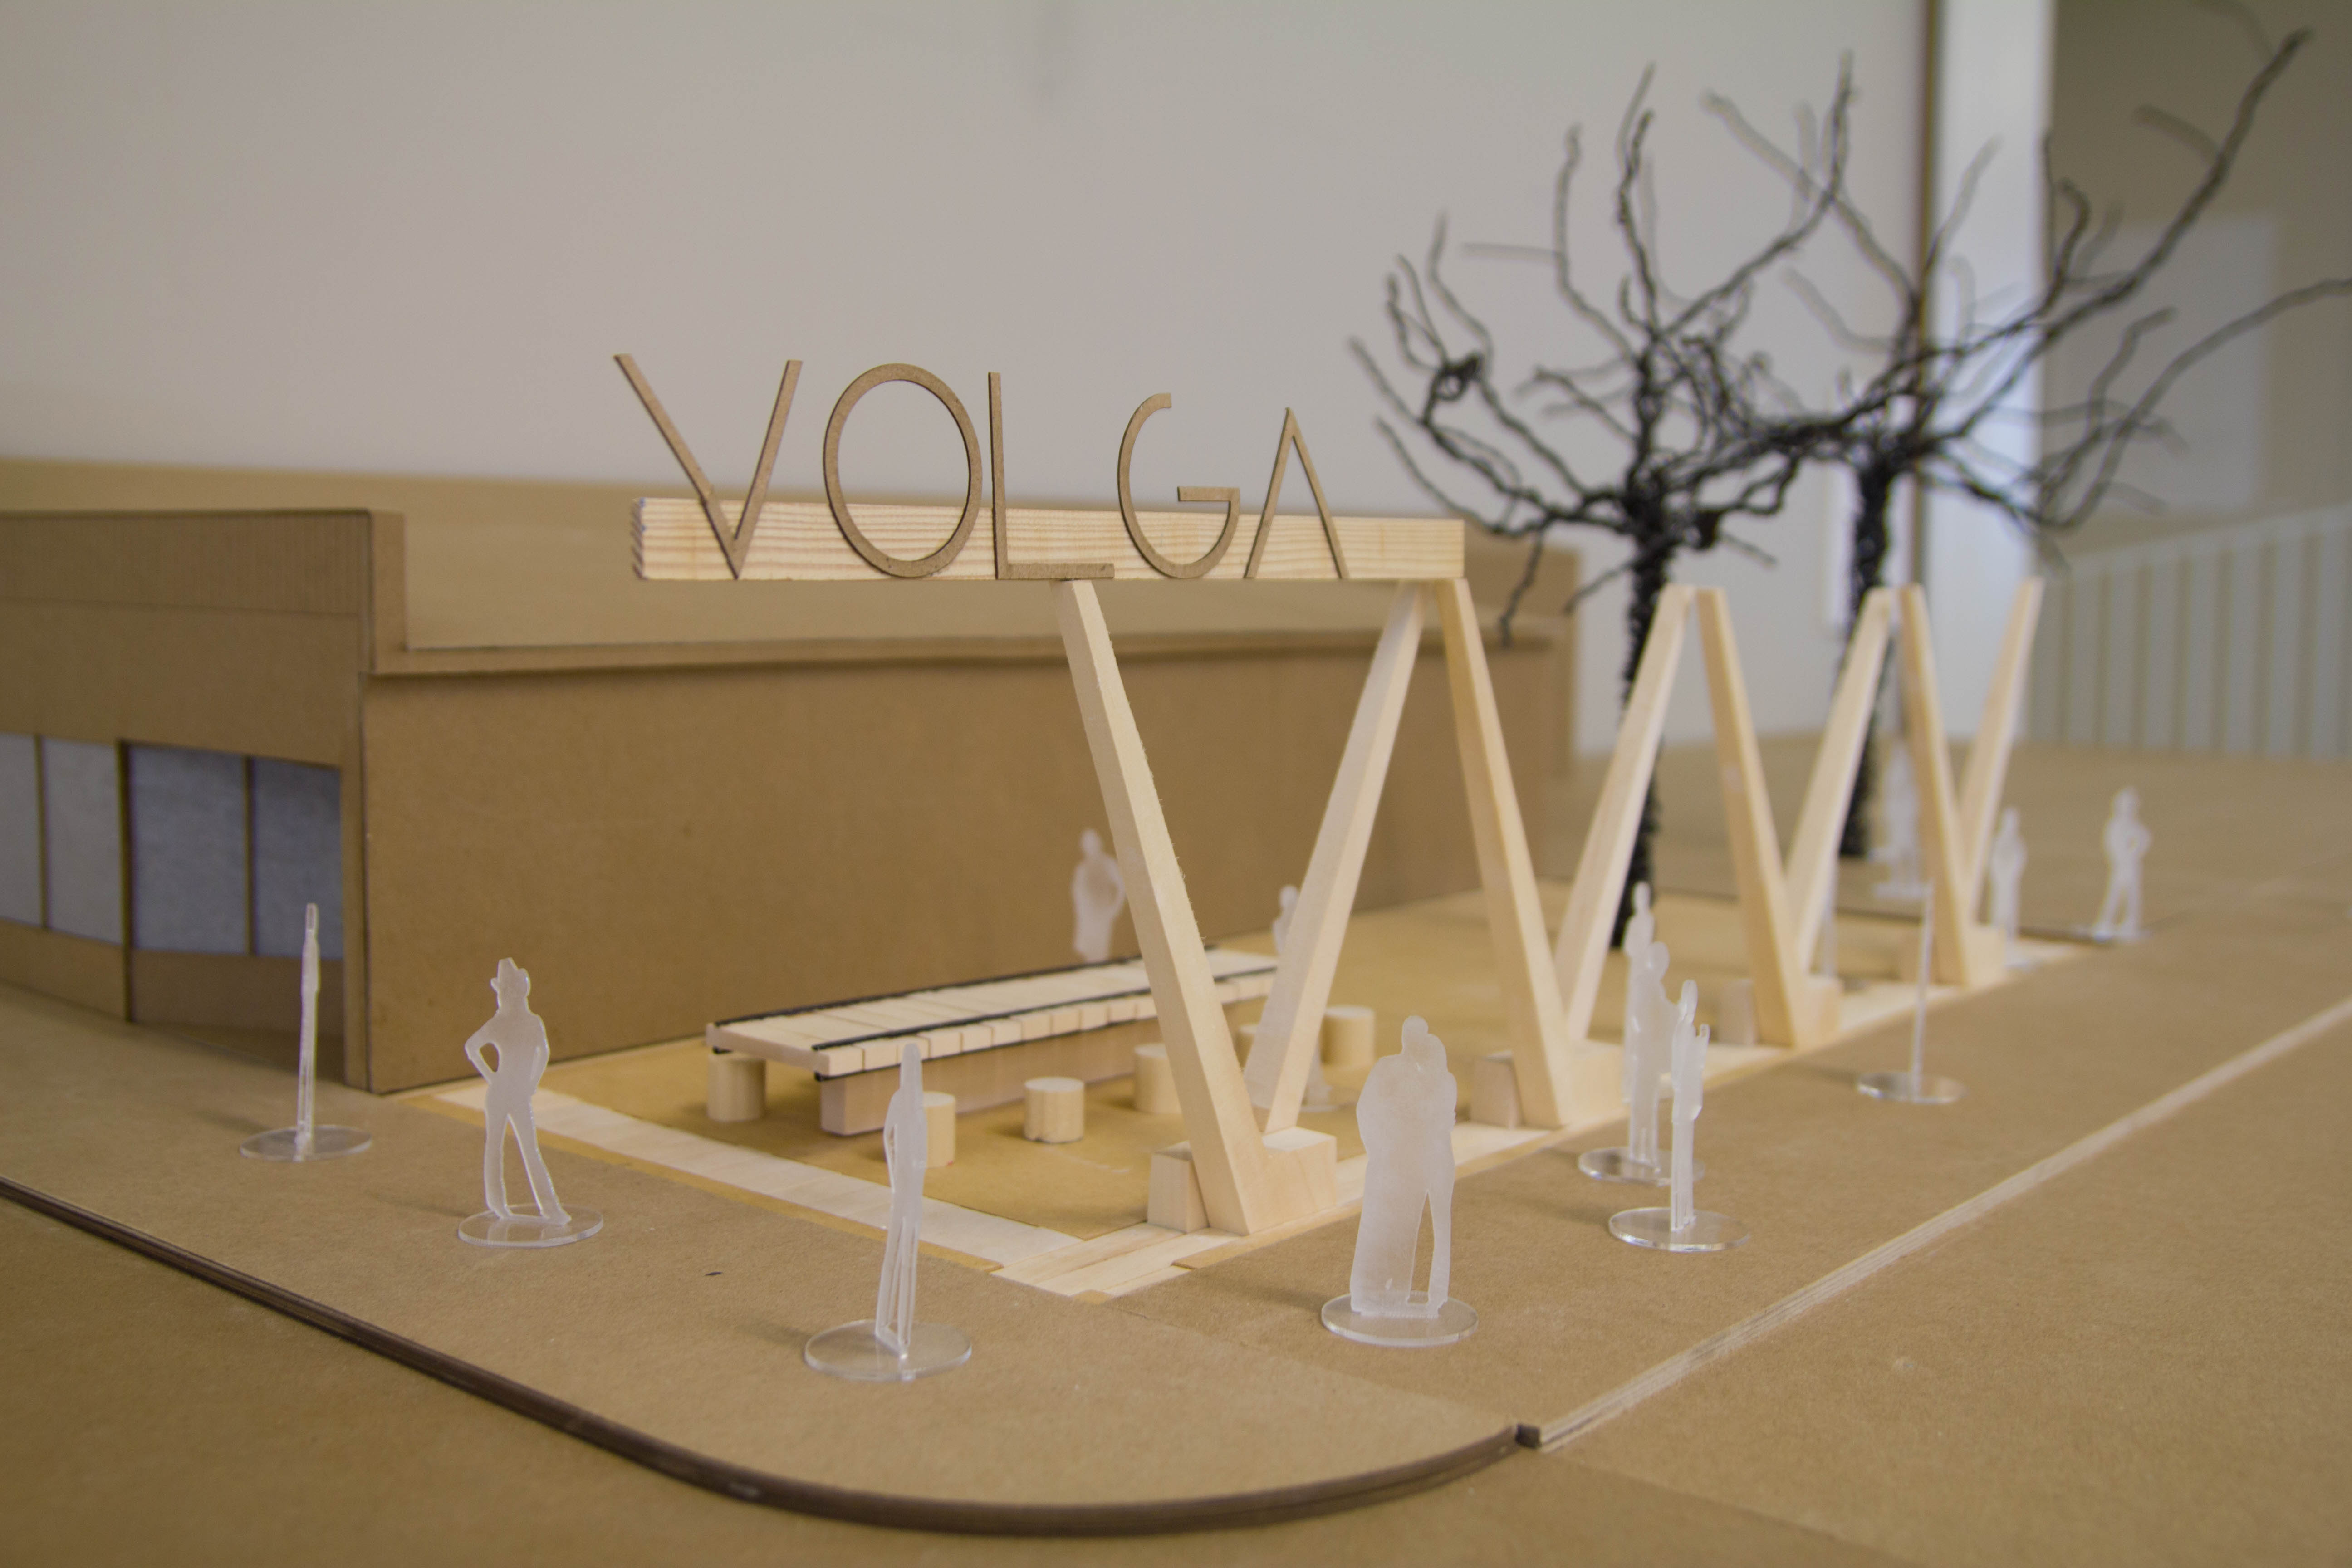 volga architecture structure model